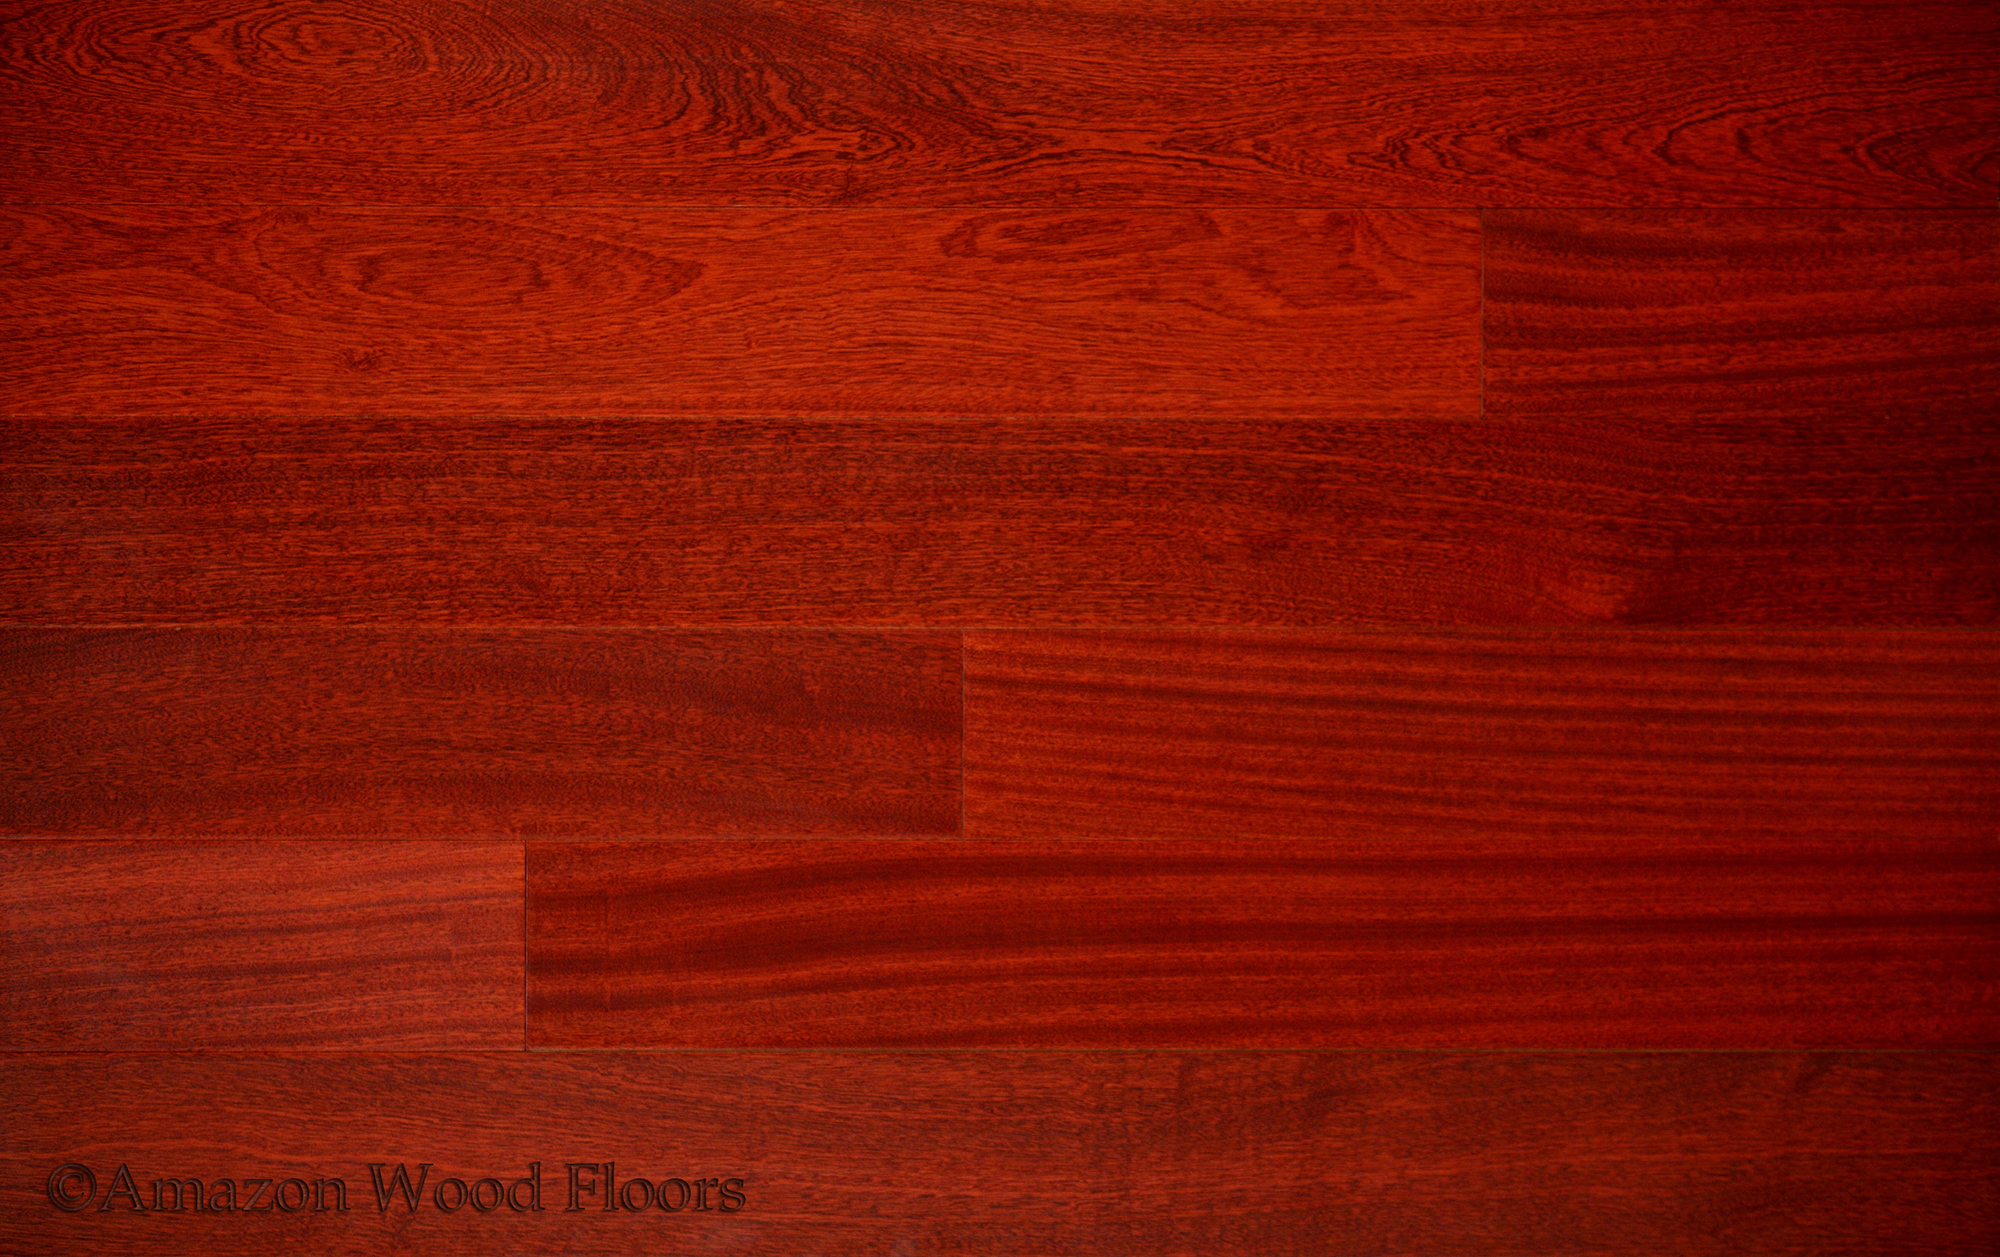 African Mahogany Wood Flooring Taraba Home Review